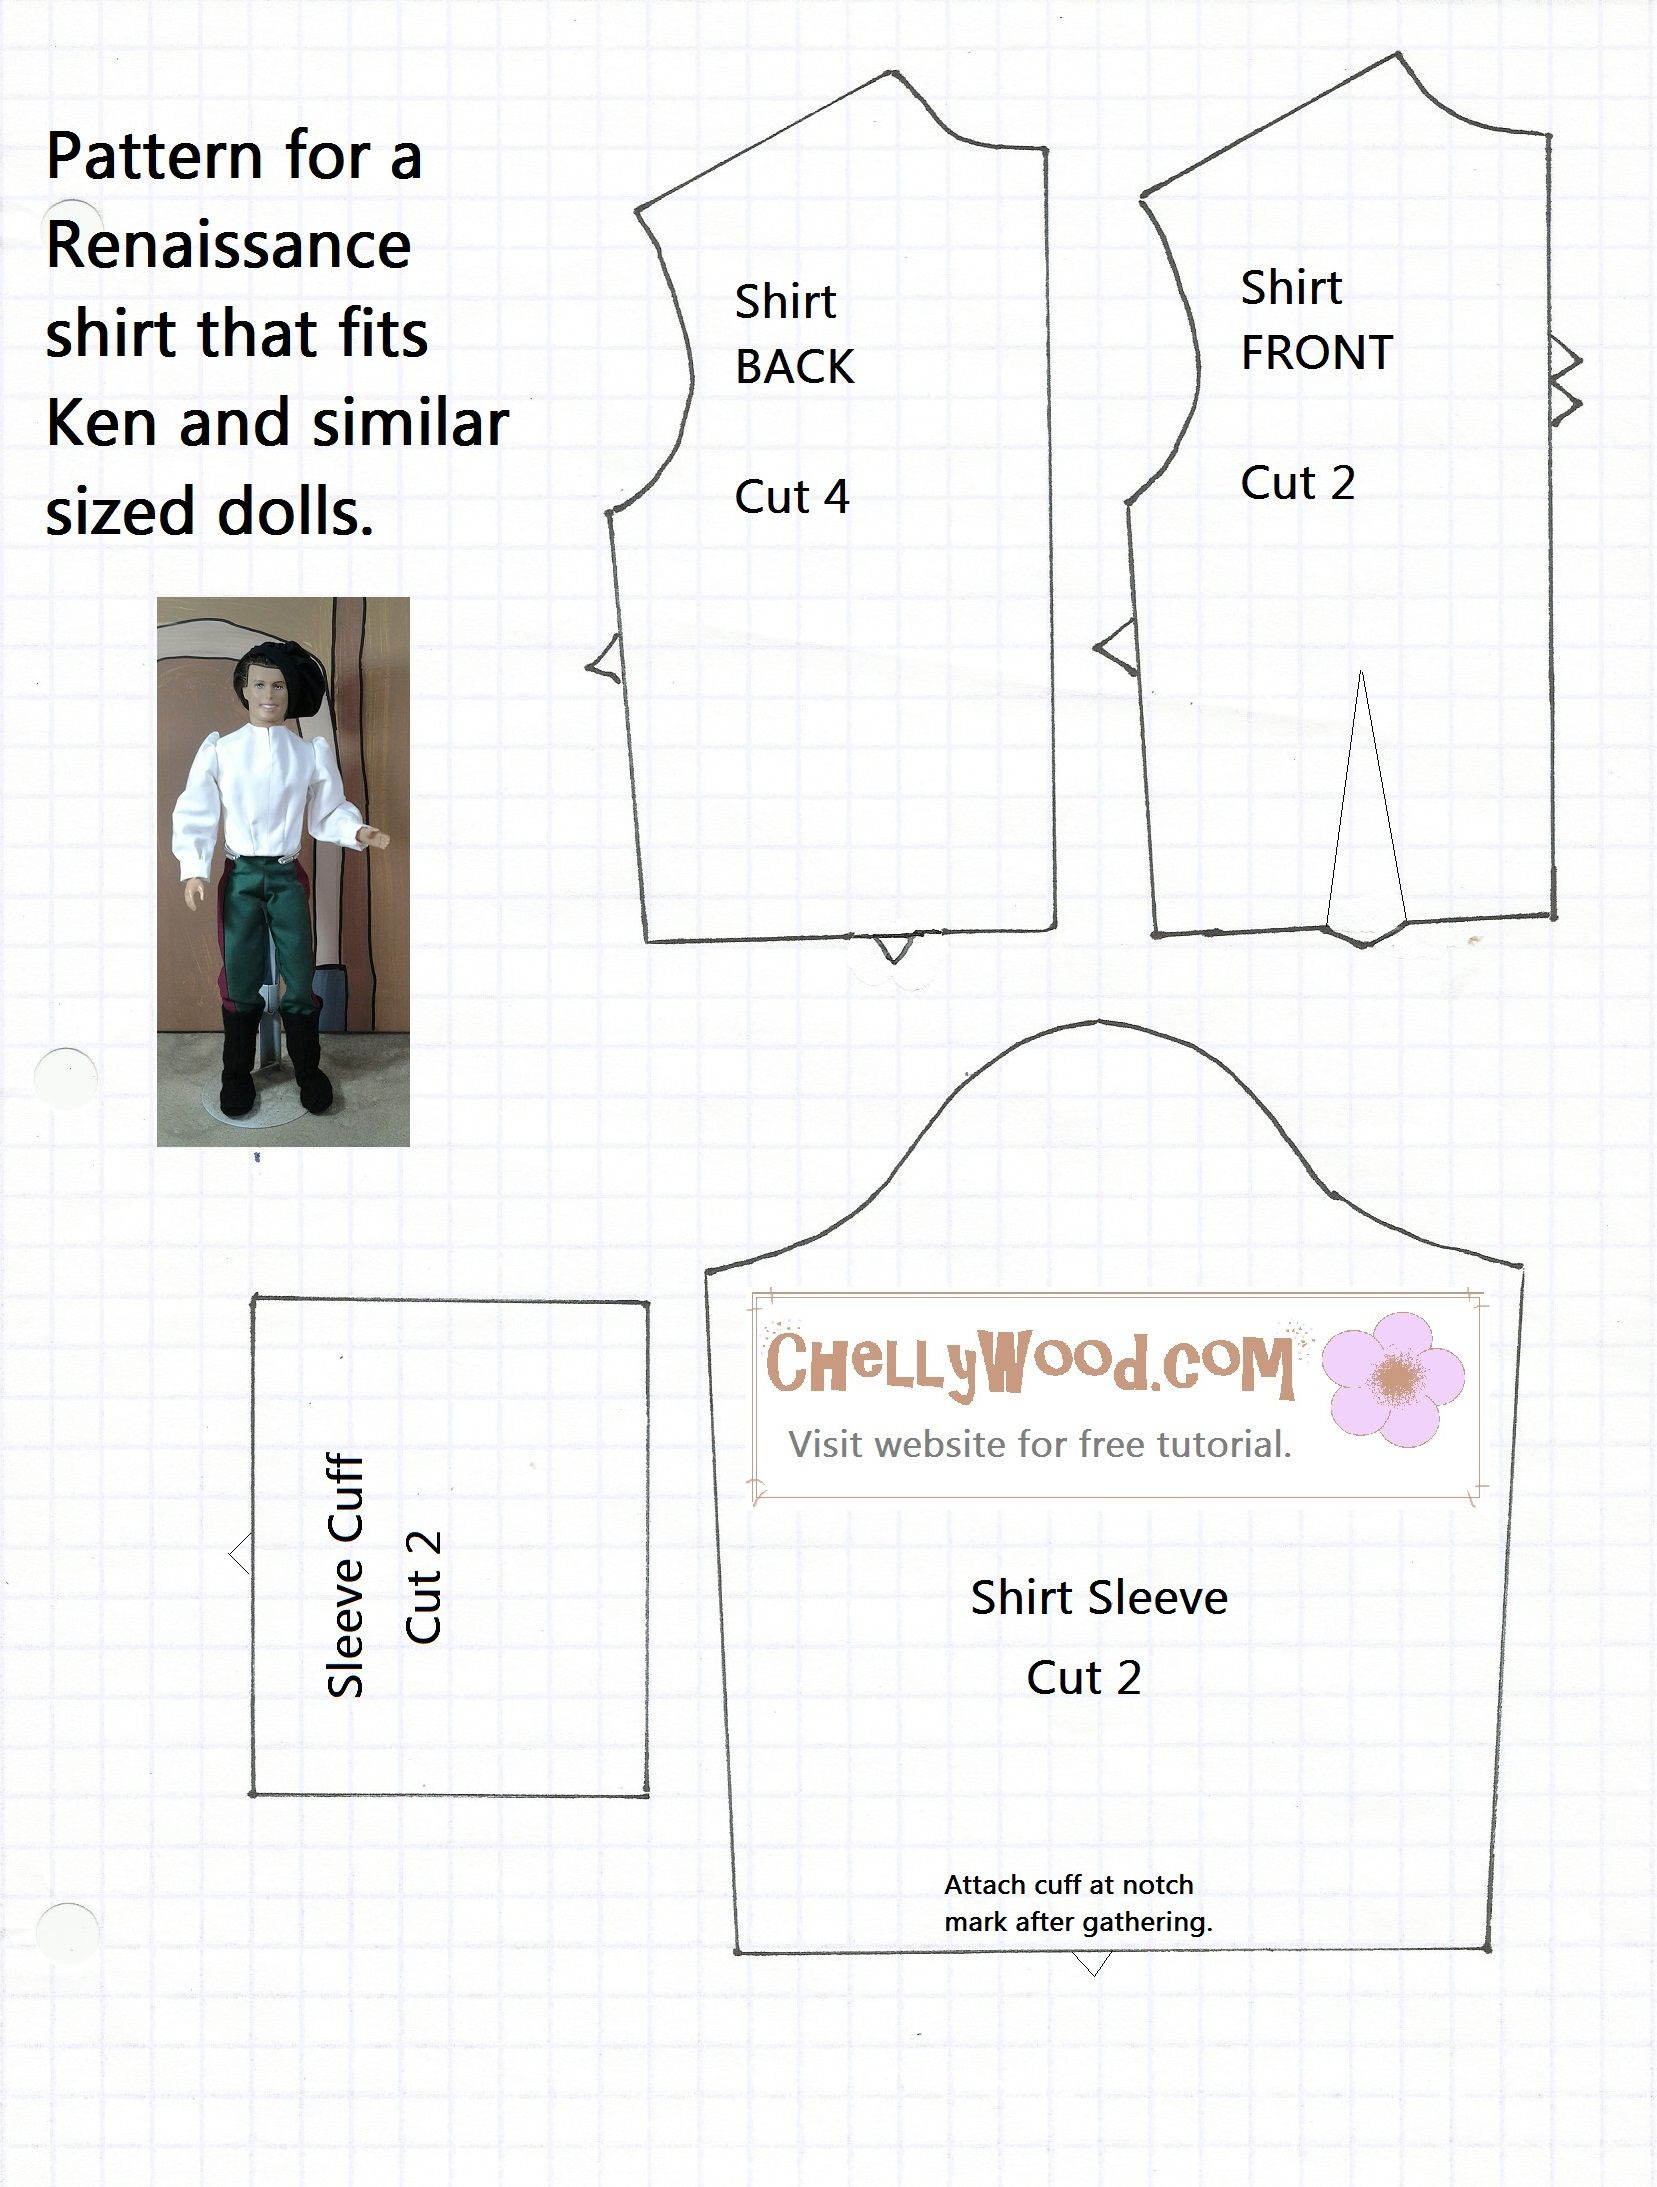 Free Shirt Pattern For Ken Dolls, Twilight's Edward Cullen Doll, And - Ken Clothes Patterns Free Printable